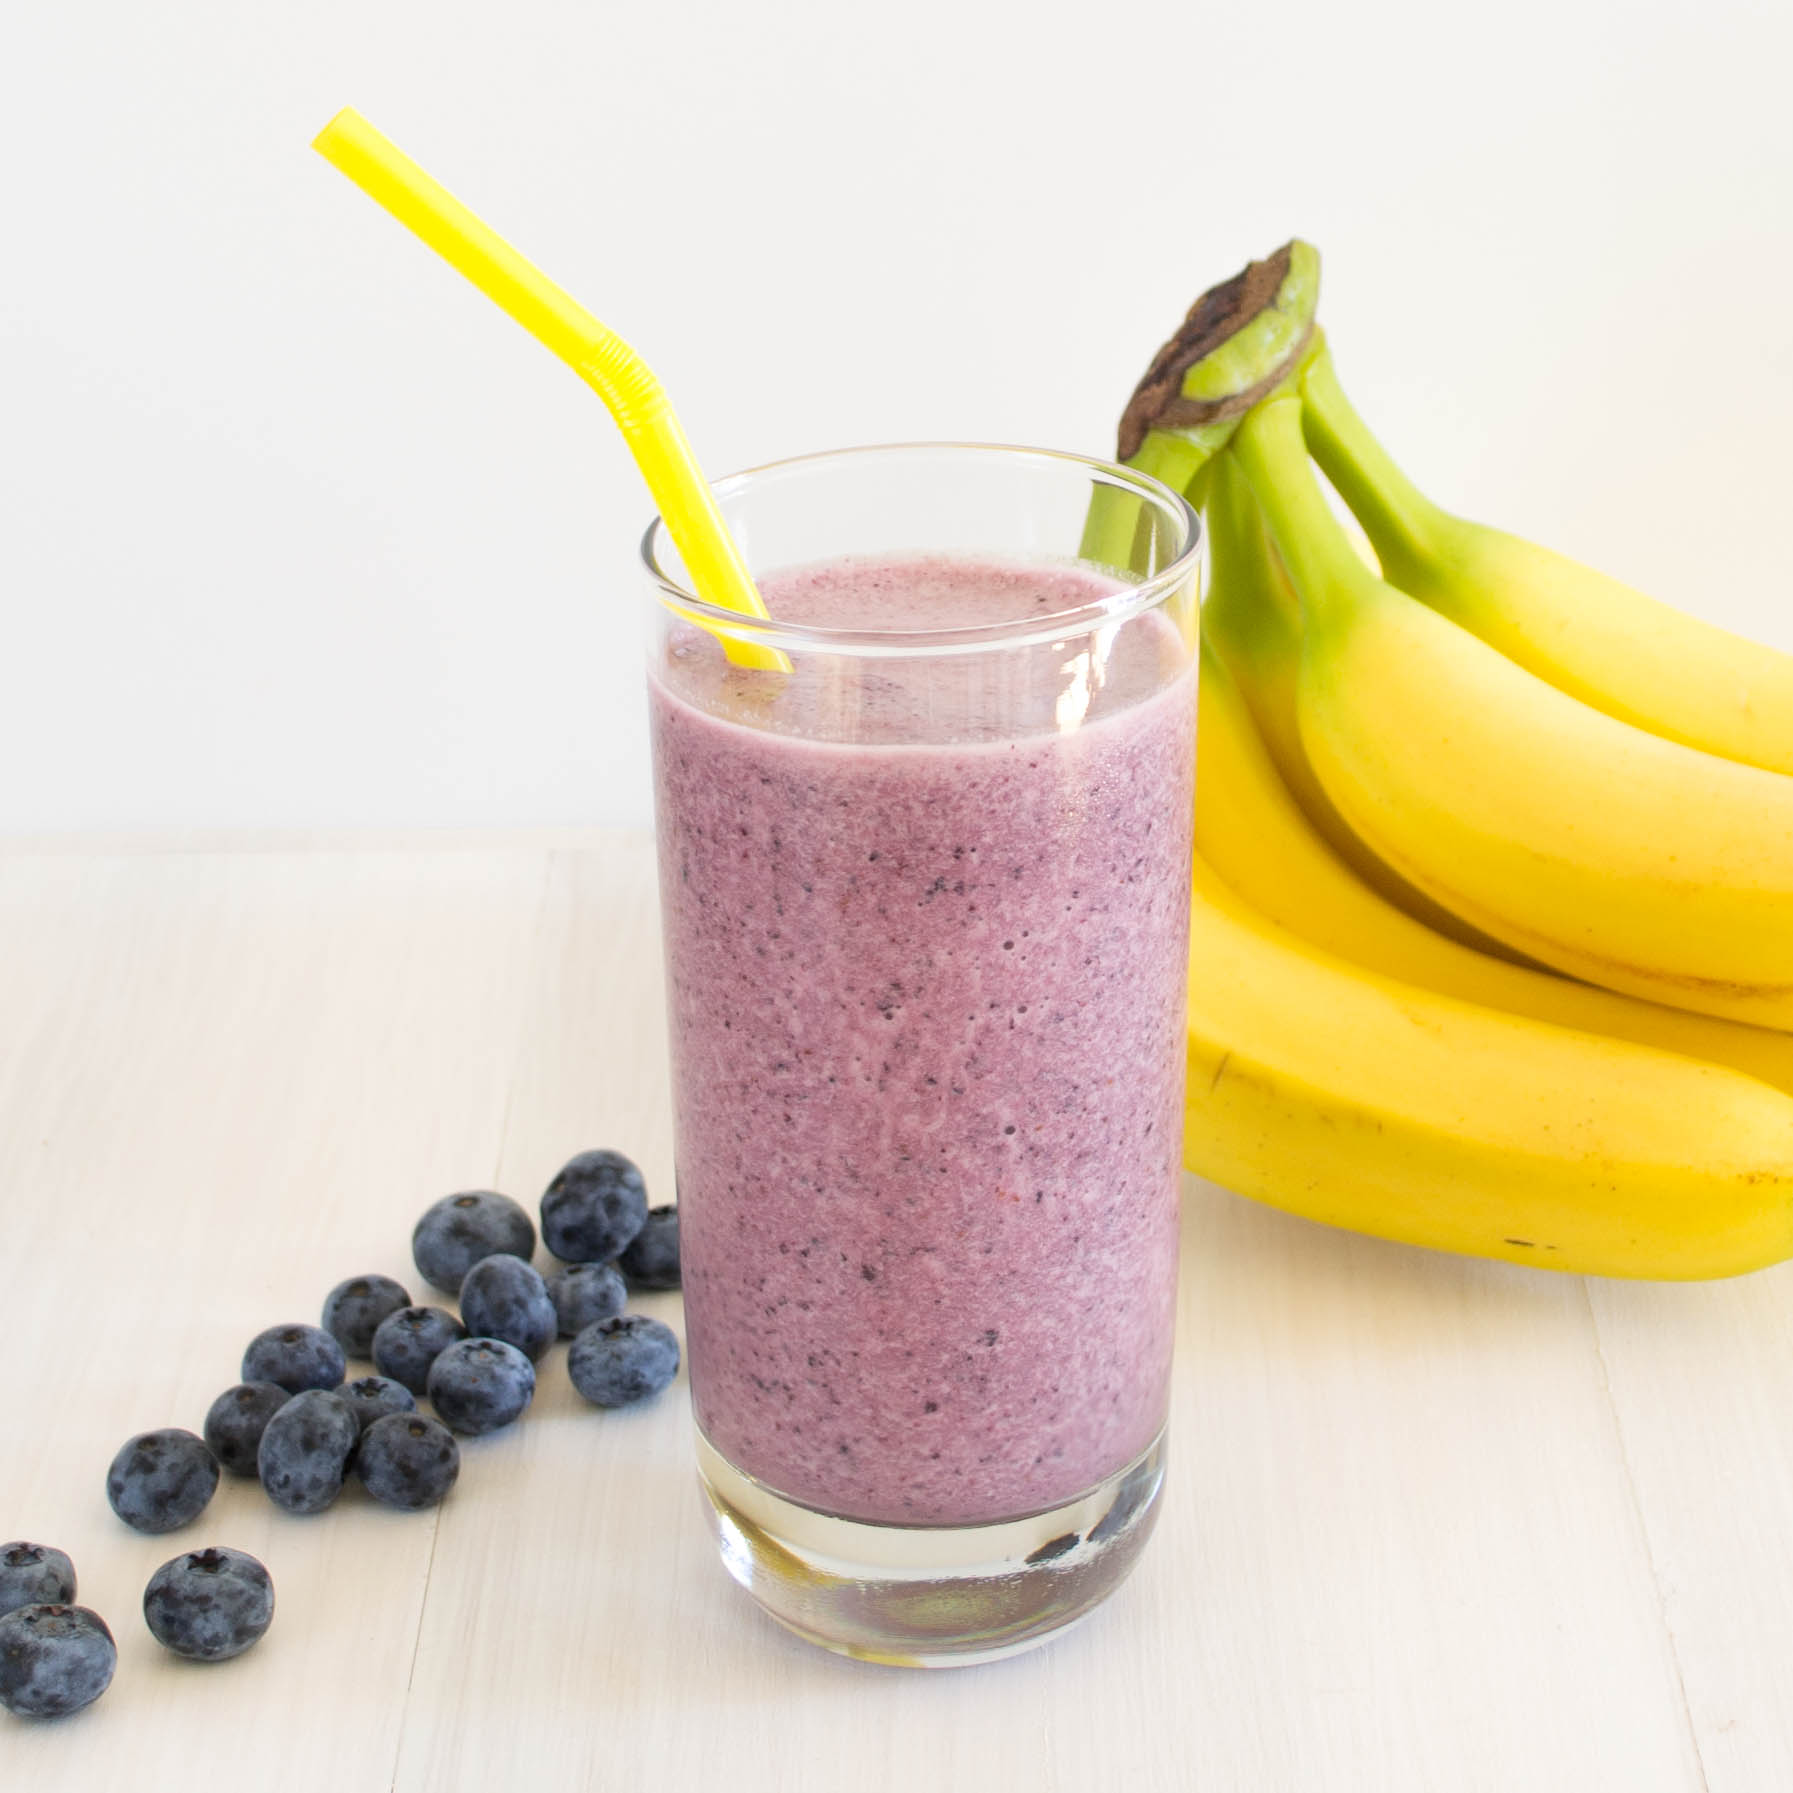 Image result for banana blueberry smoothie